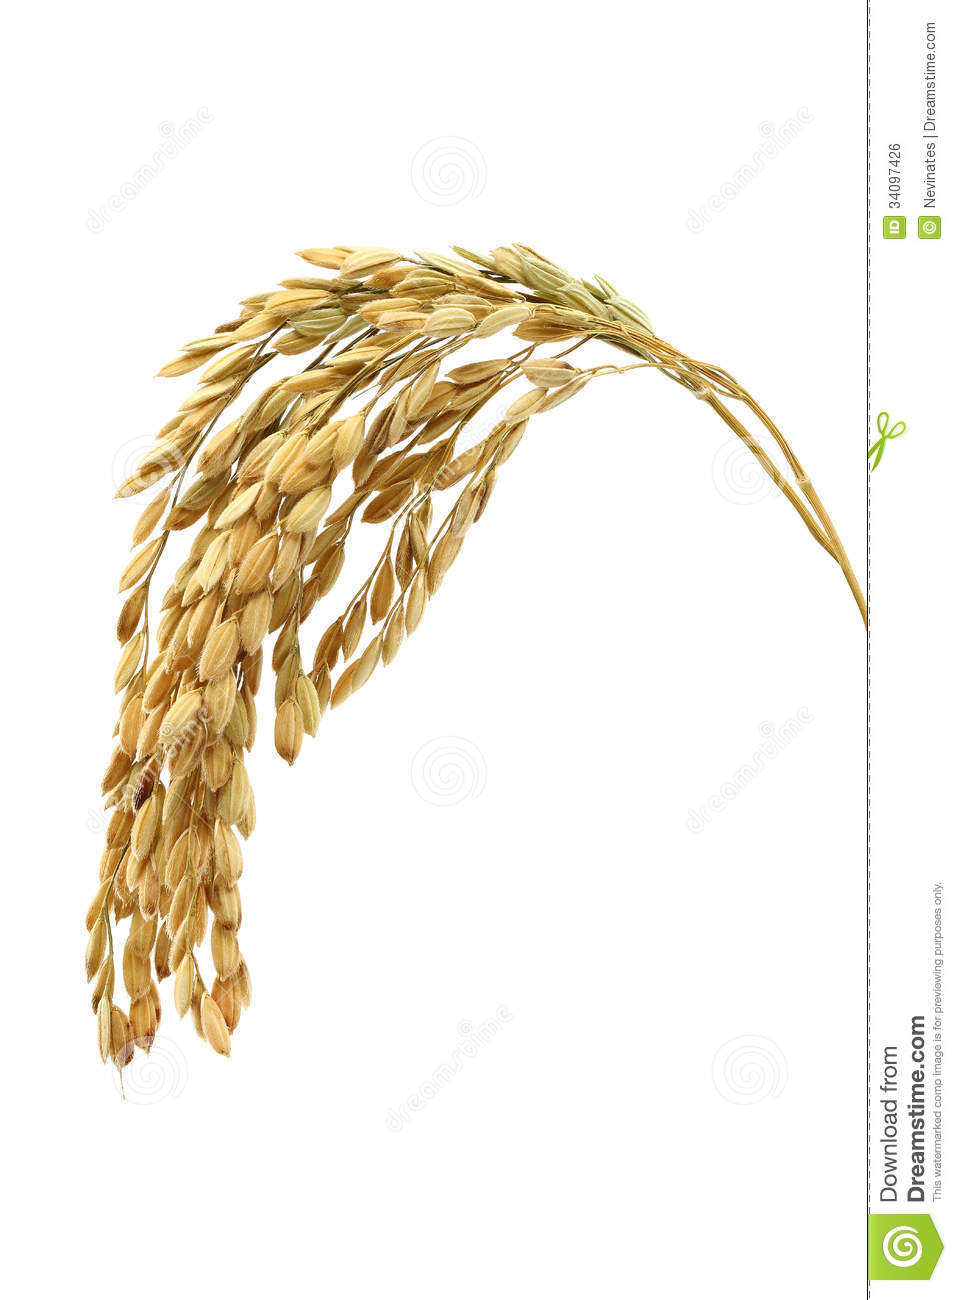 Royalty Free Stock Image  Rice Stalks